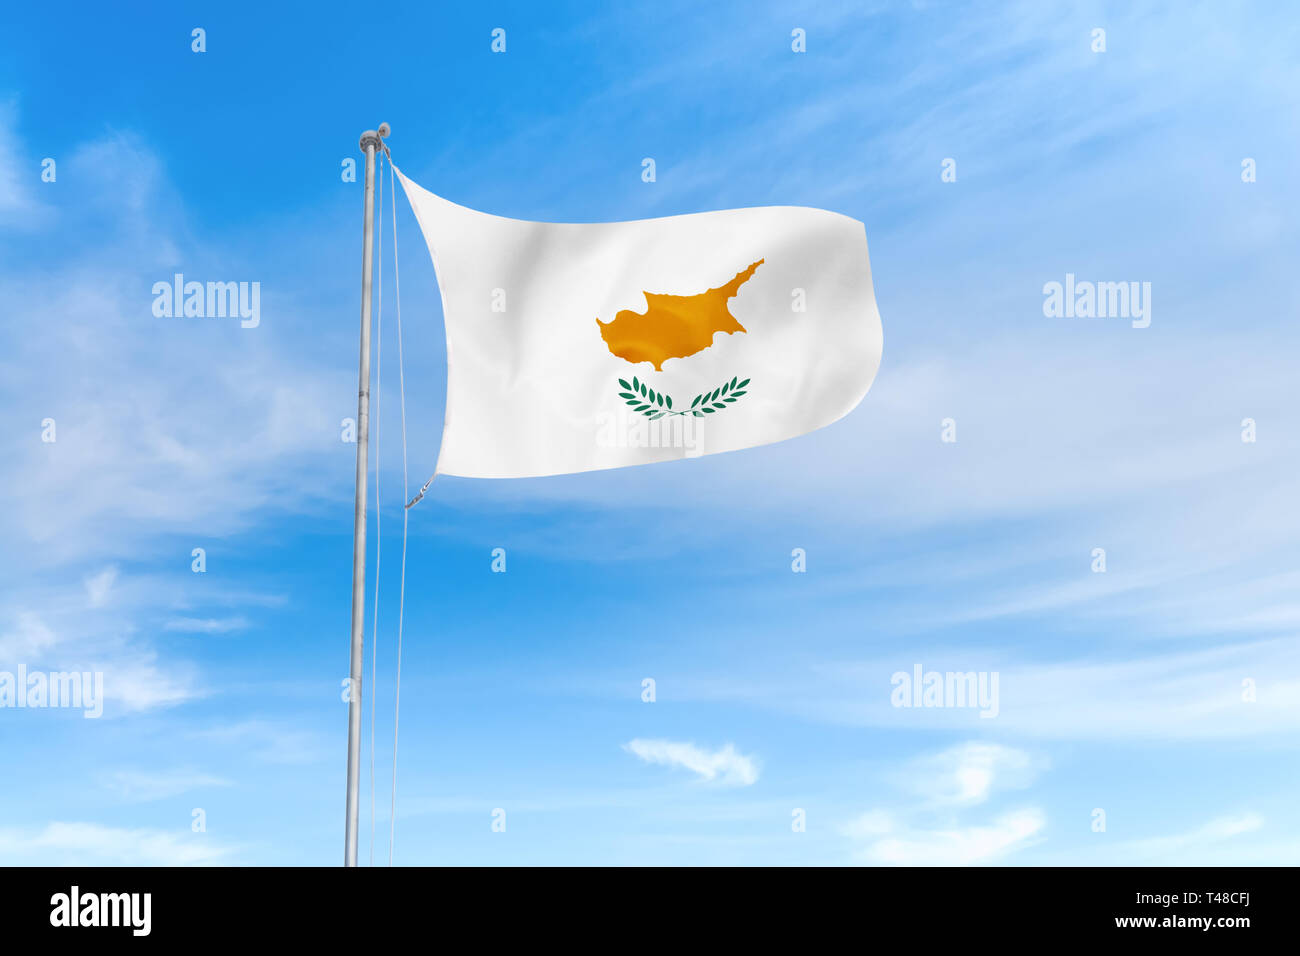 Cyprus flag blowing in the wind over nice blue sky background - Stock Image